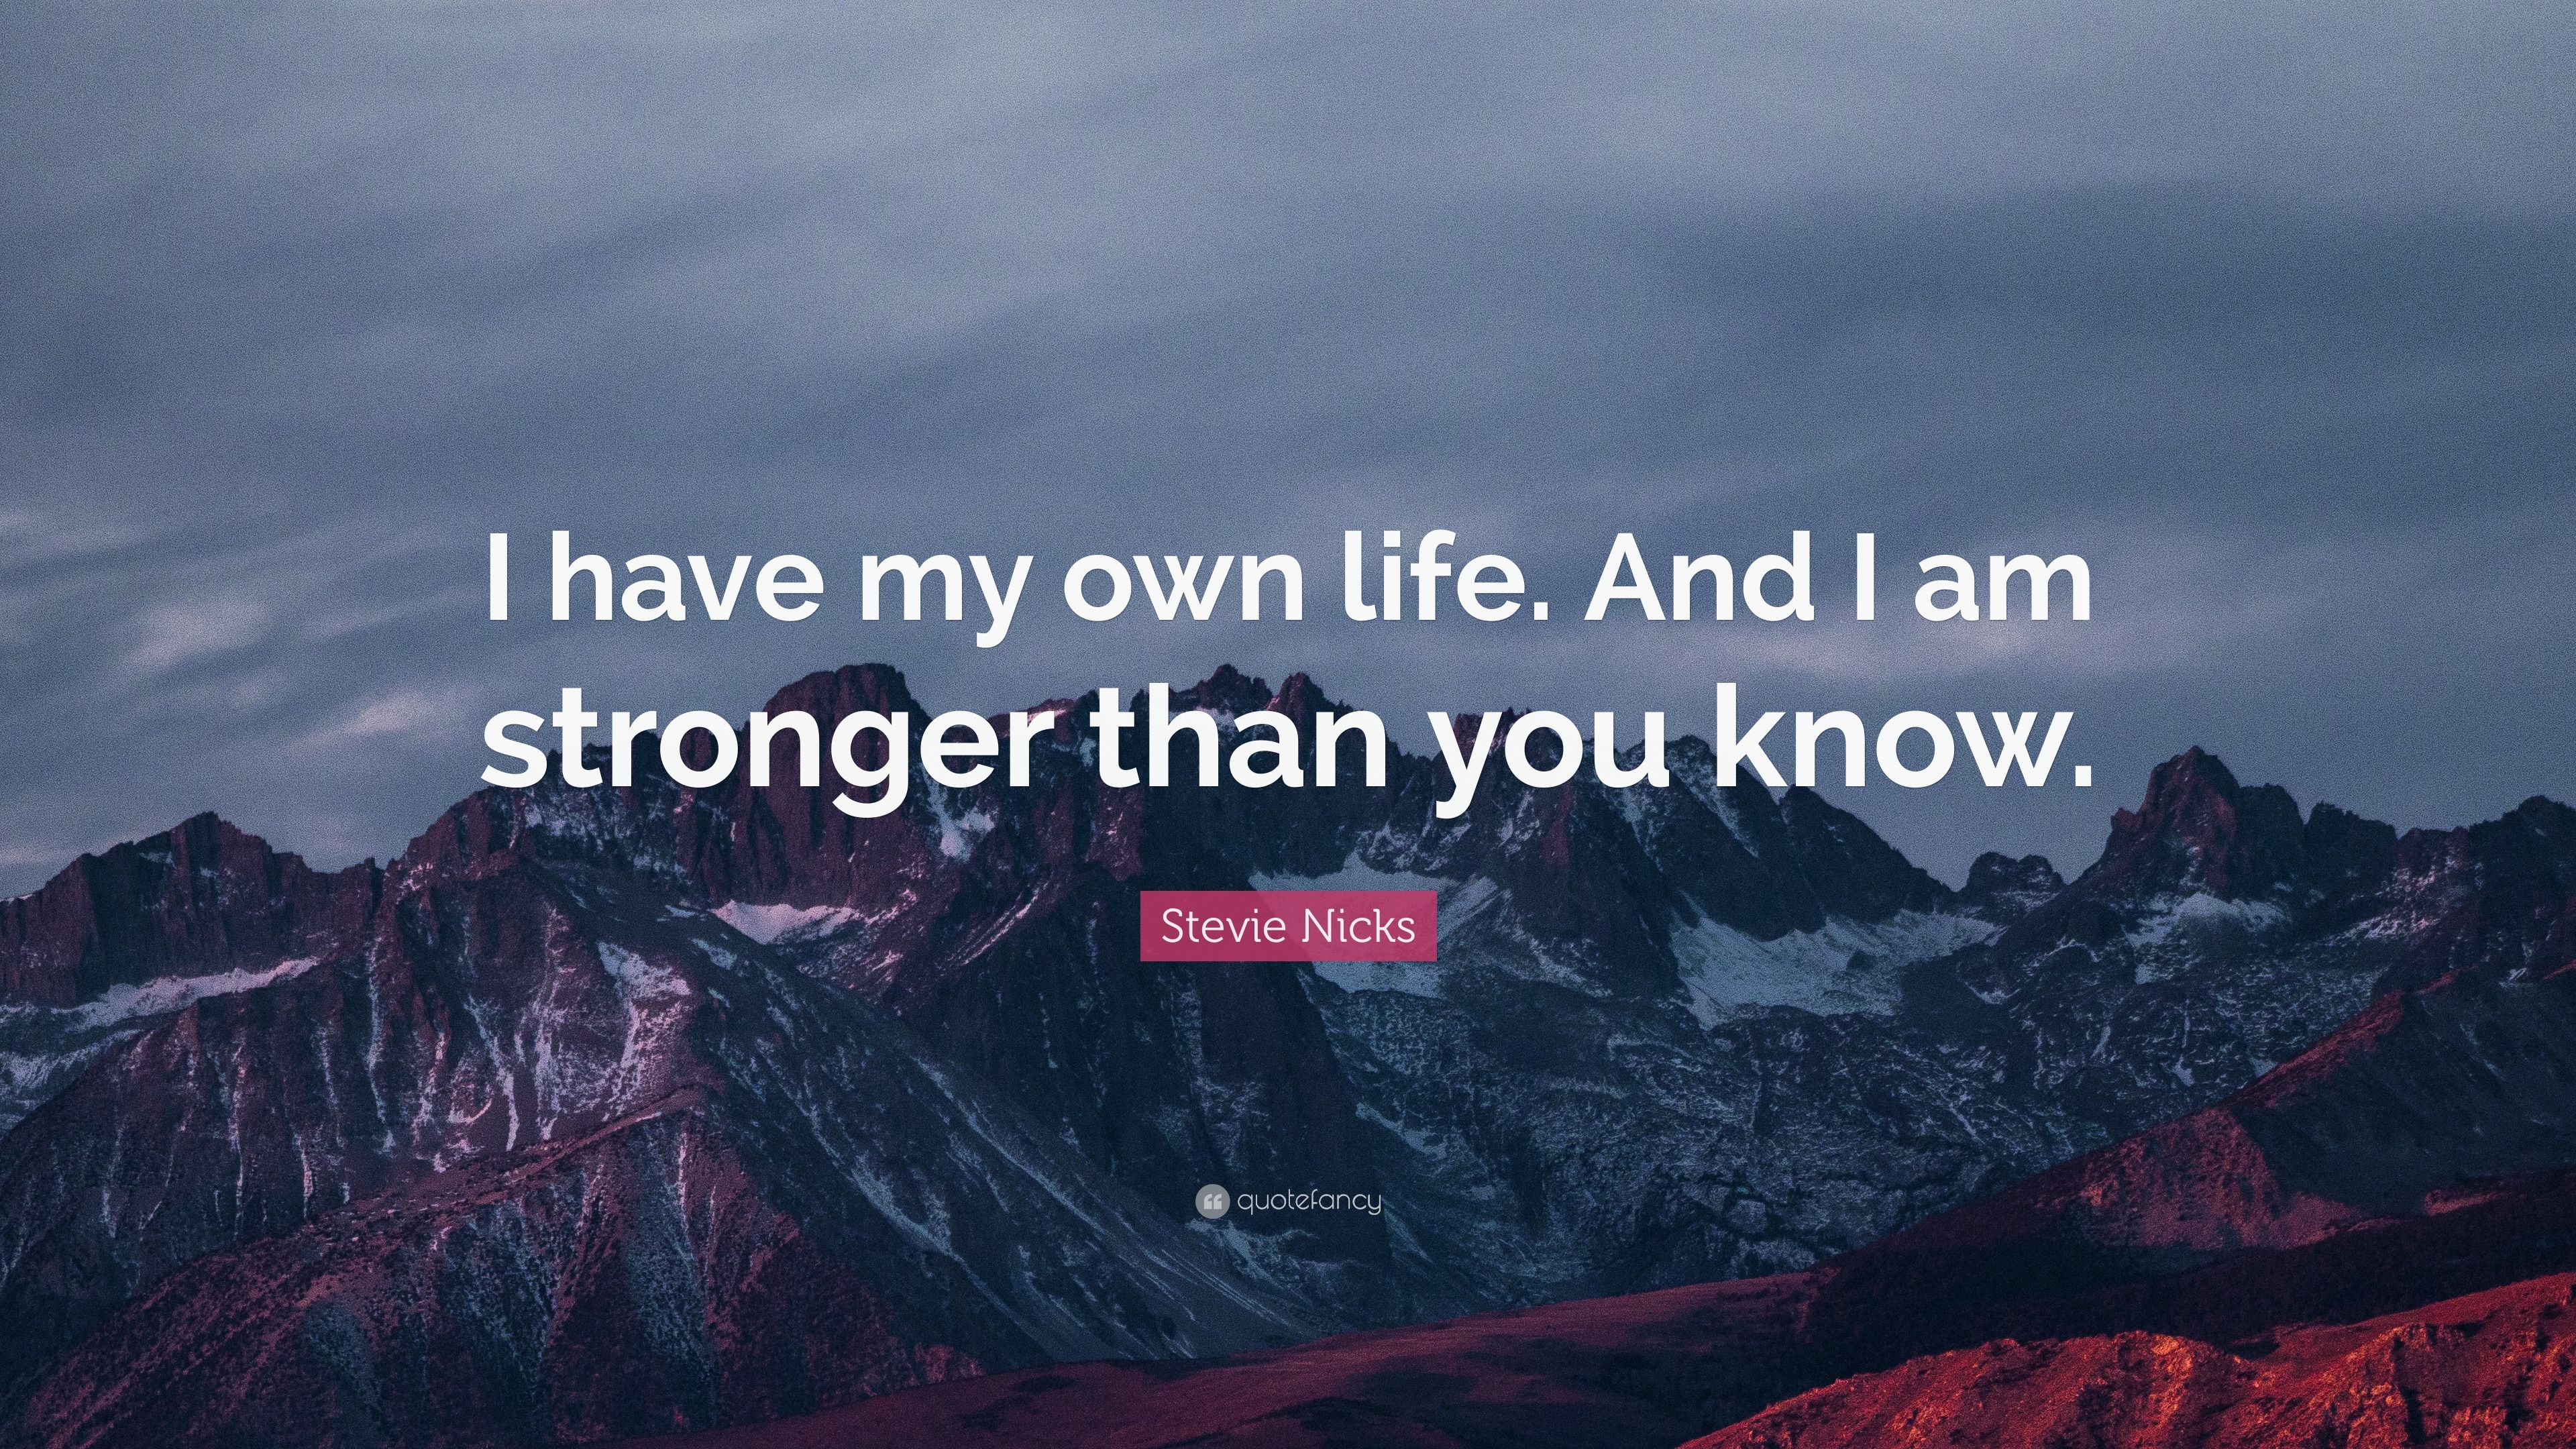 I Am Stronger Than You Know Quotes